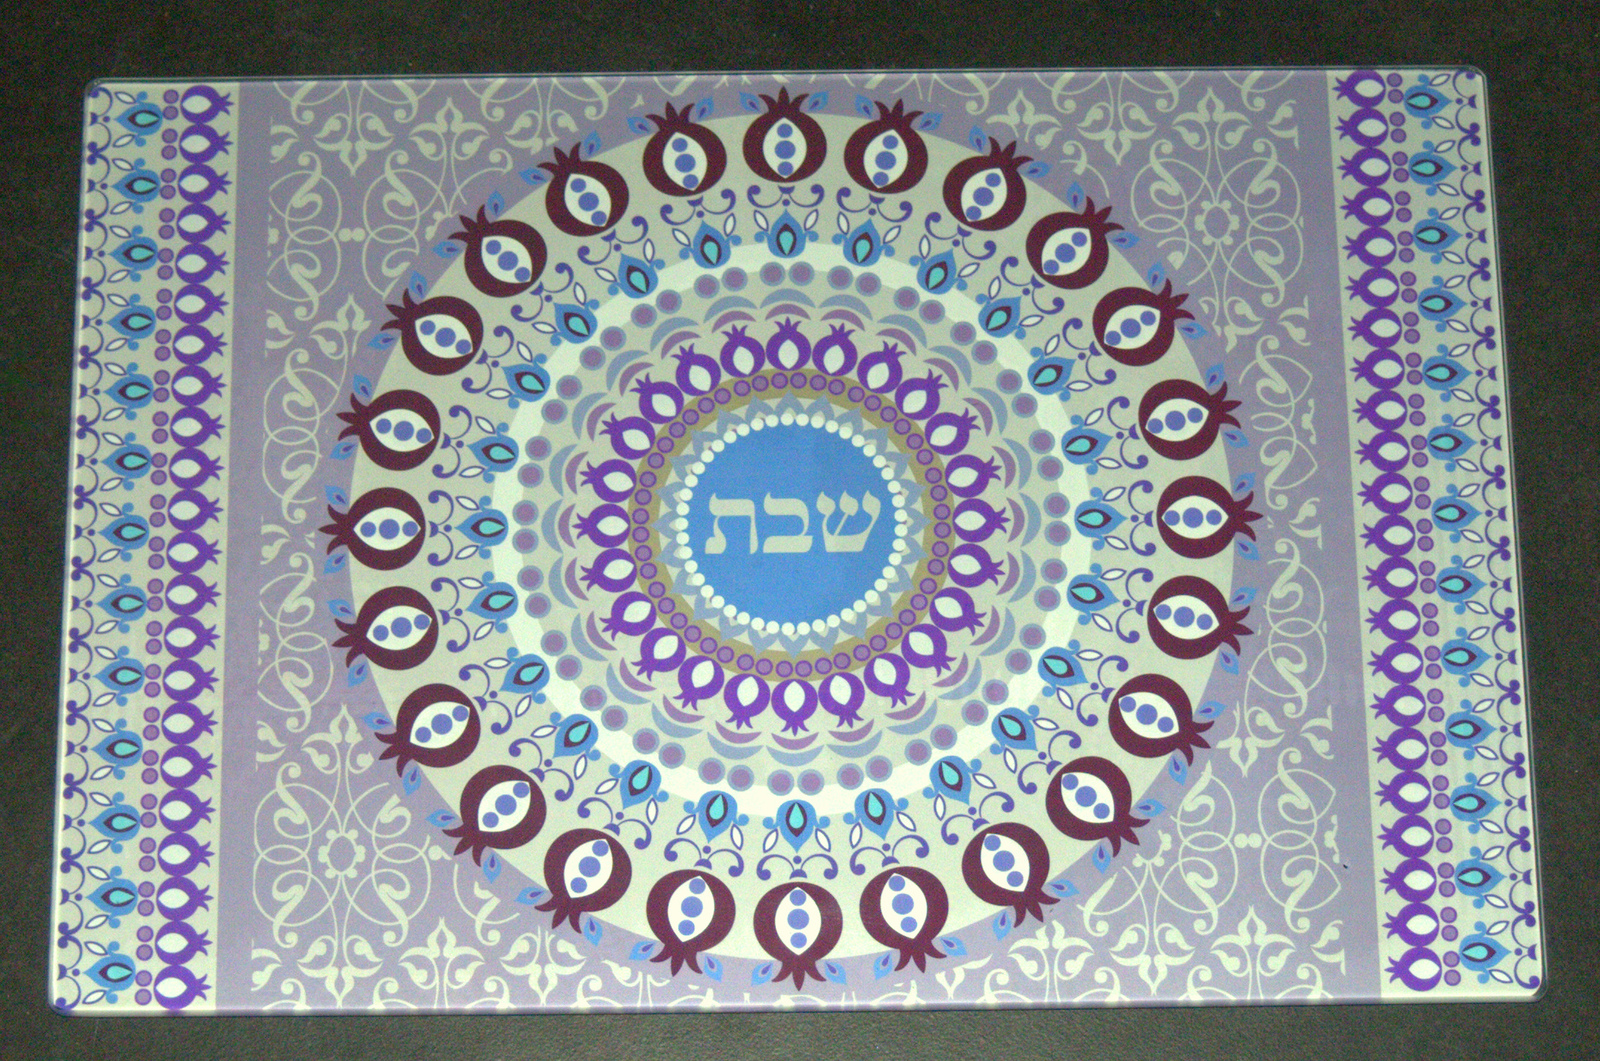 Judaica Challah Tray Board Reinforced Glass Shabbat Kiddush Floral Purple Blue